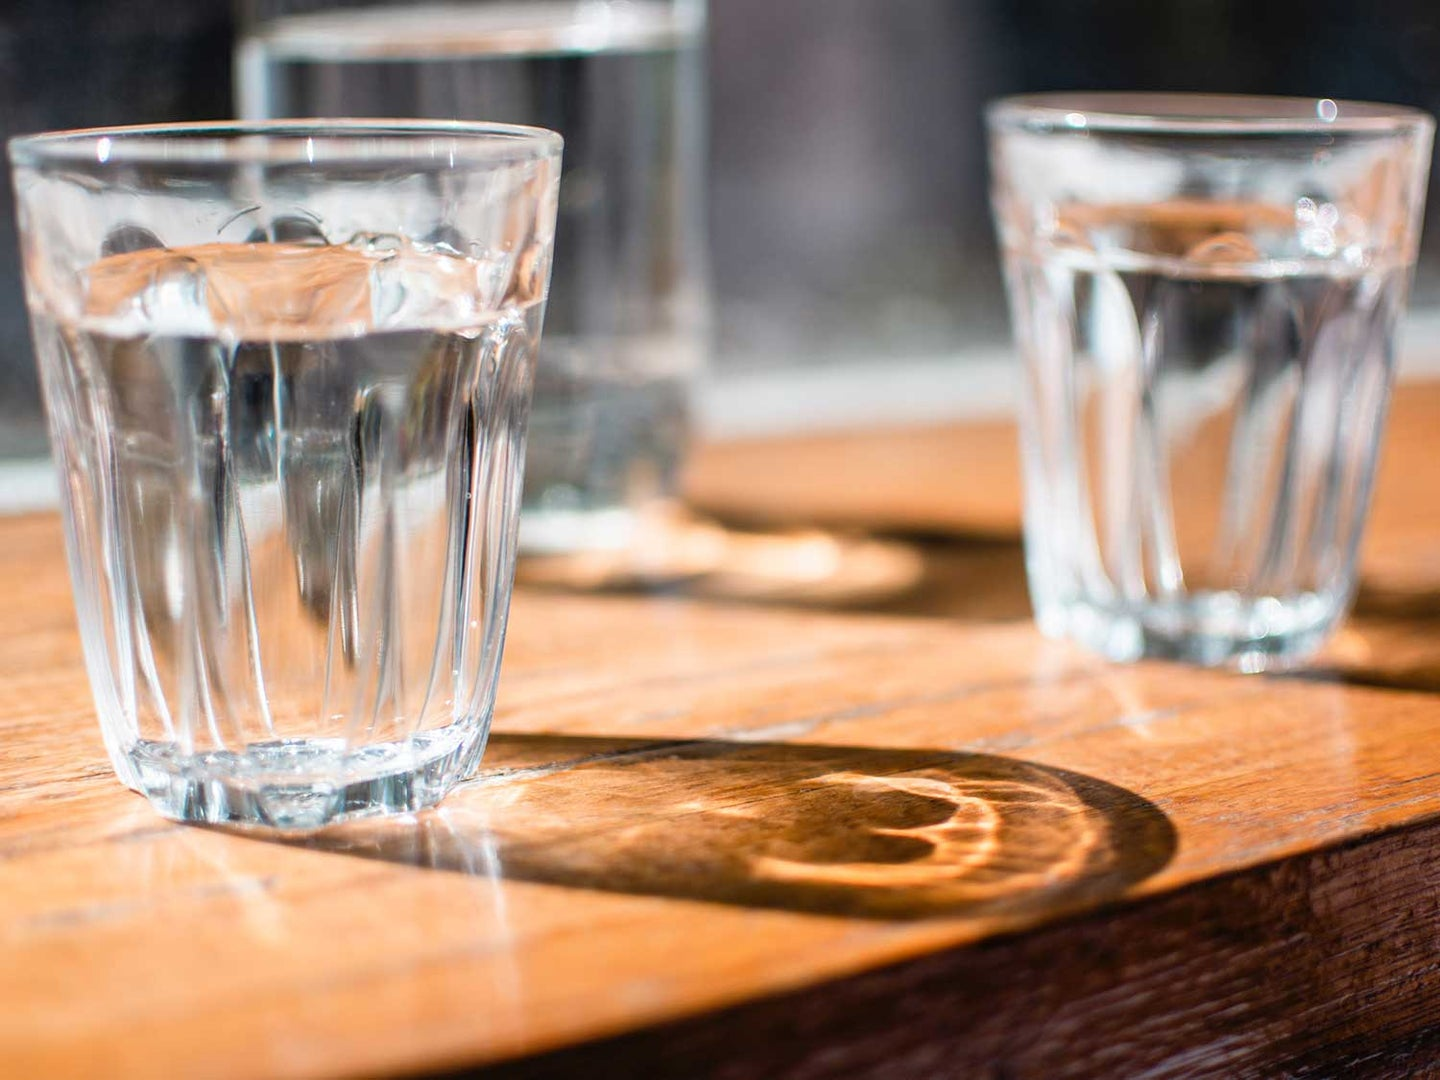 Water glasses filled with filtered water from refrigerator.